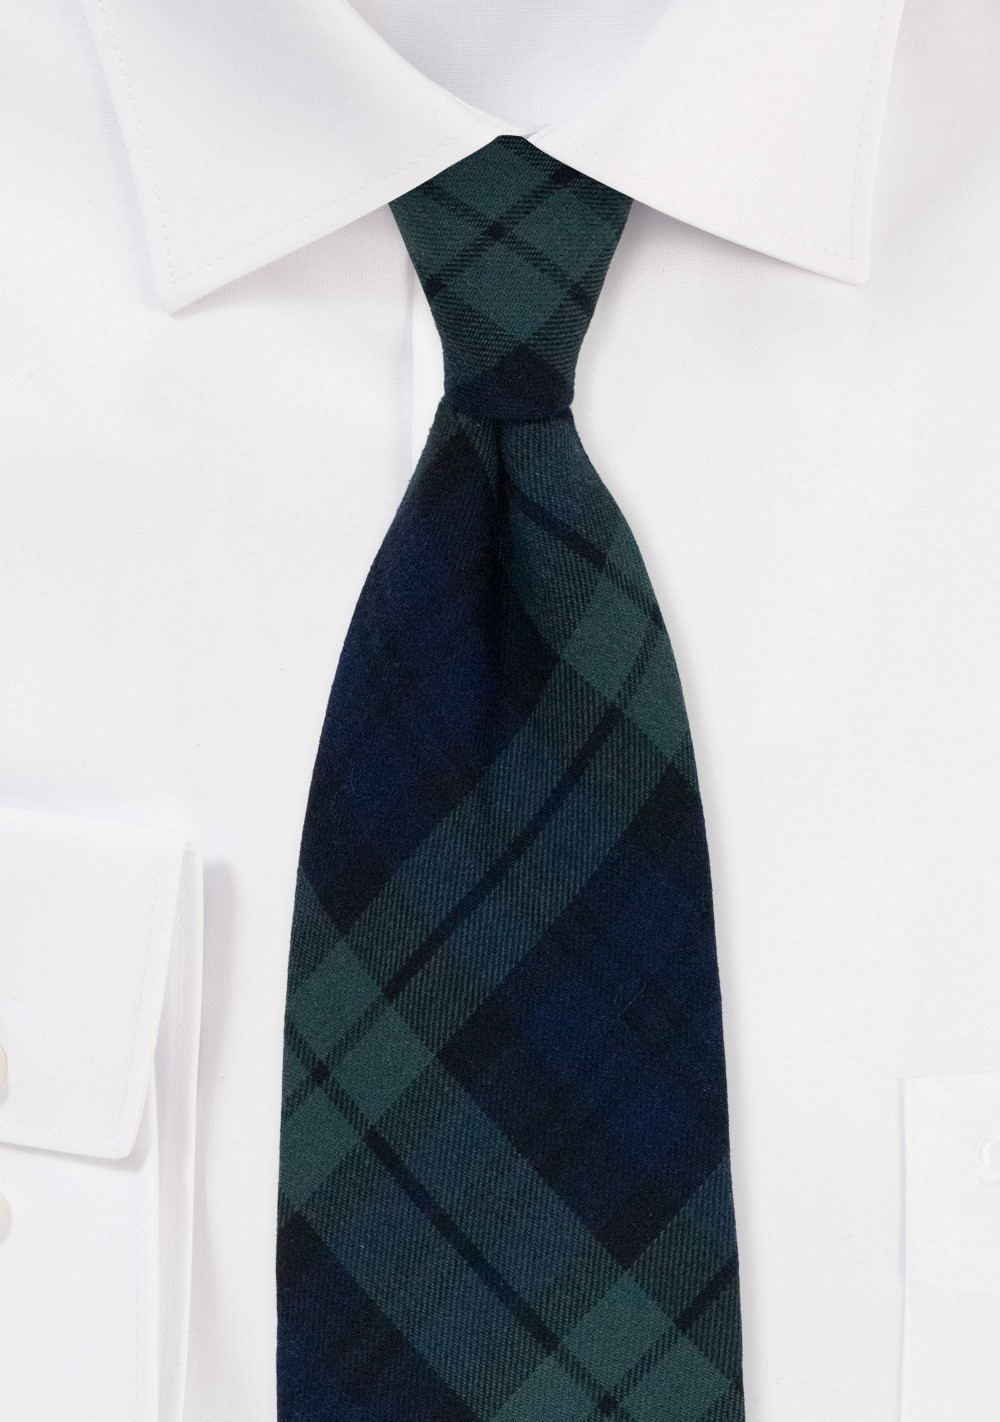 Christmas Plaid Necktie in Hunter Green and Navy